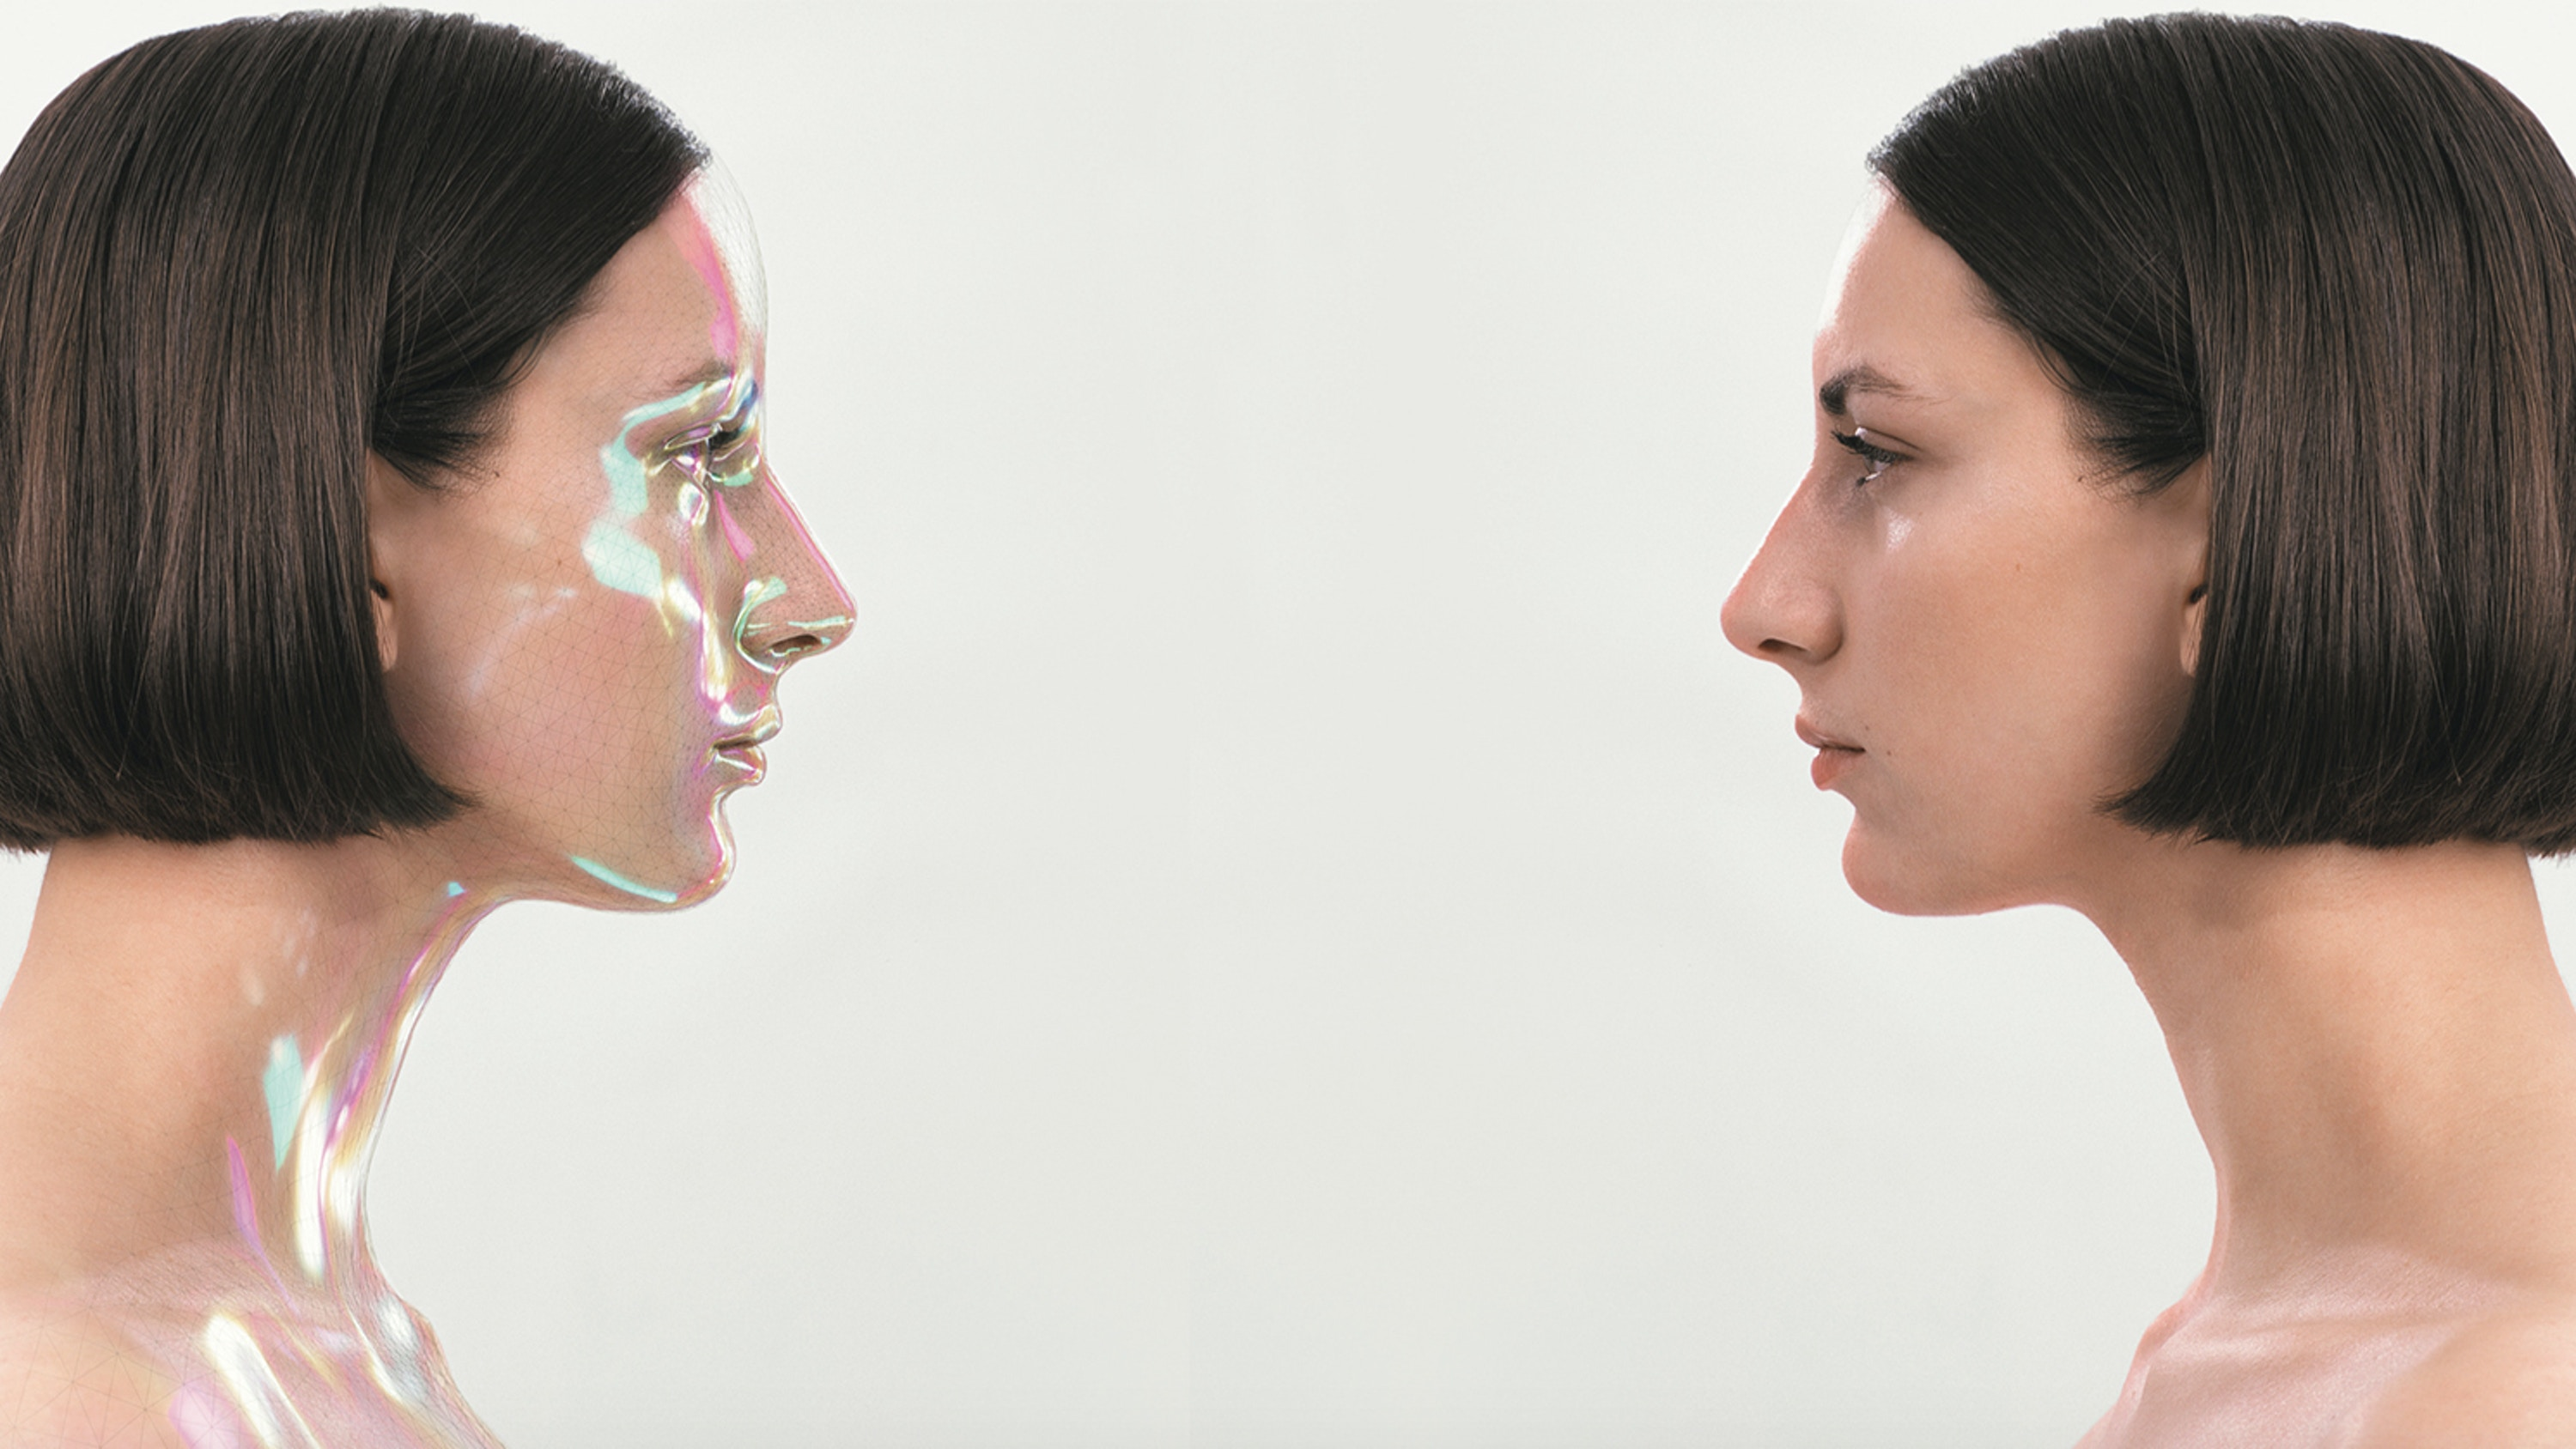 Visual of Virtual makeup: maybe they're born with it, maybe it's XR